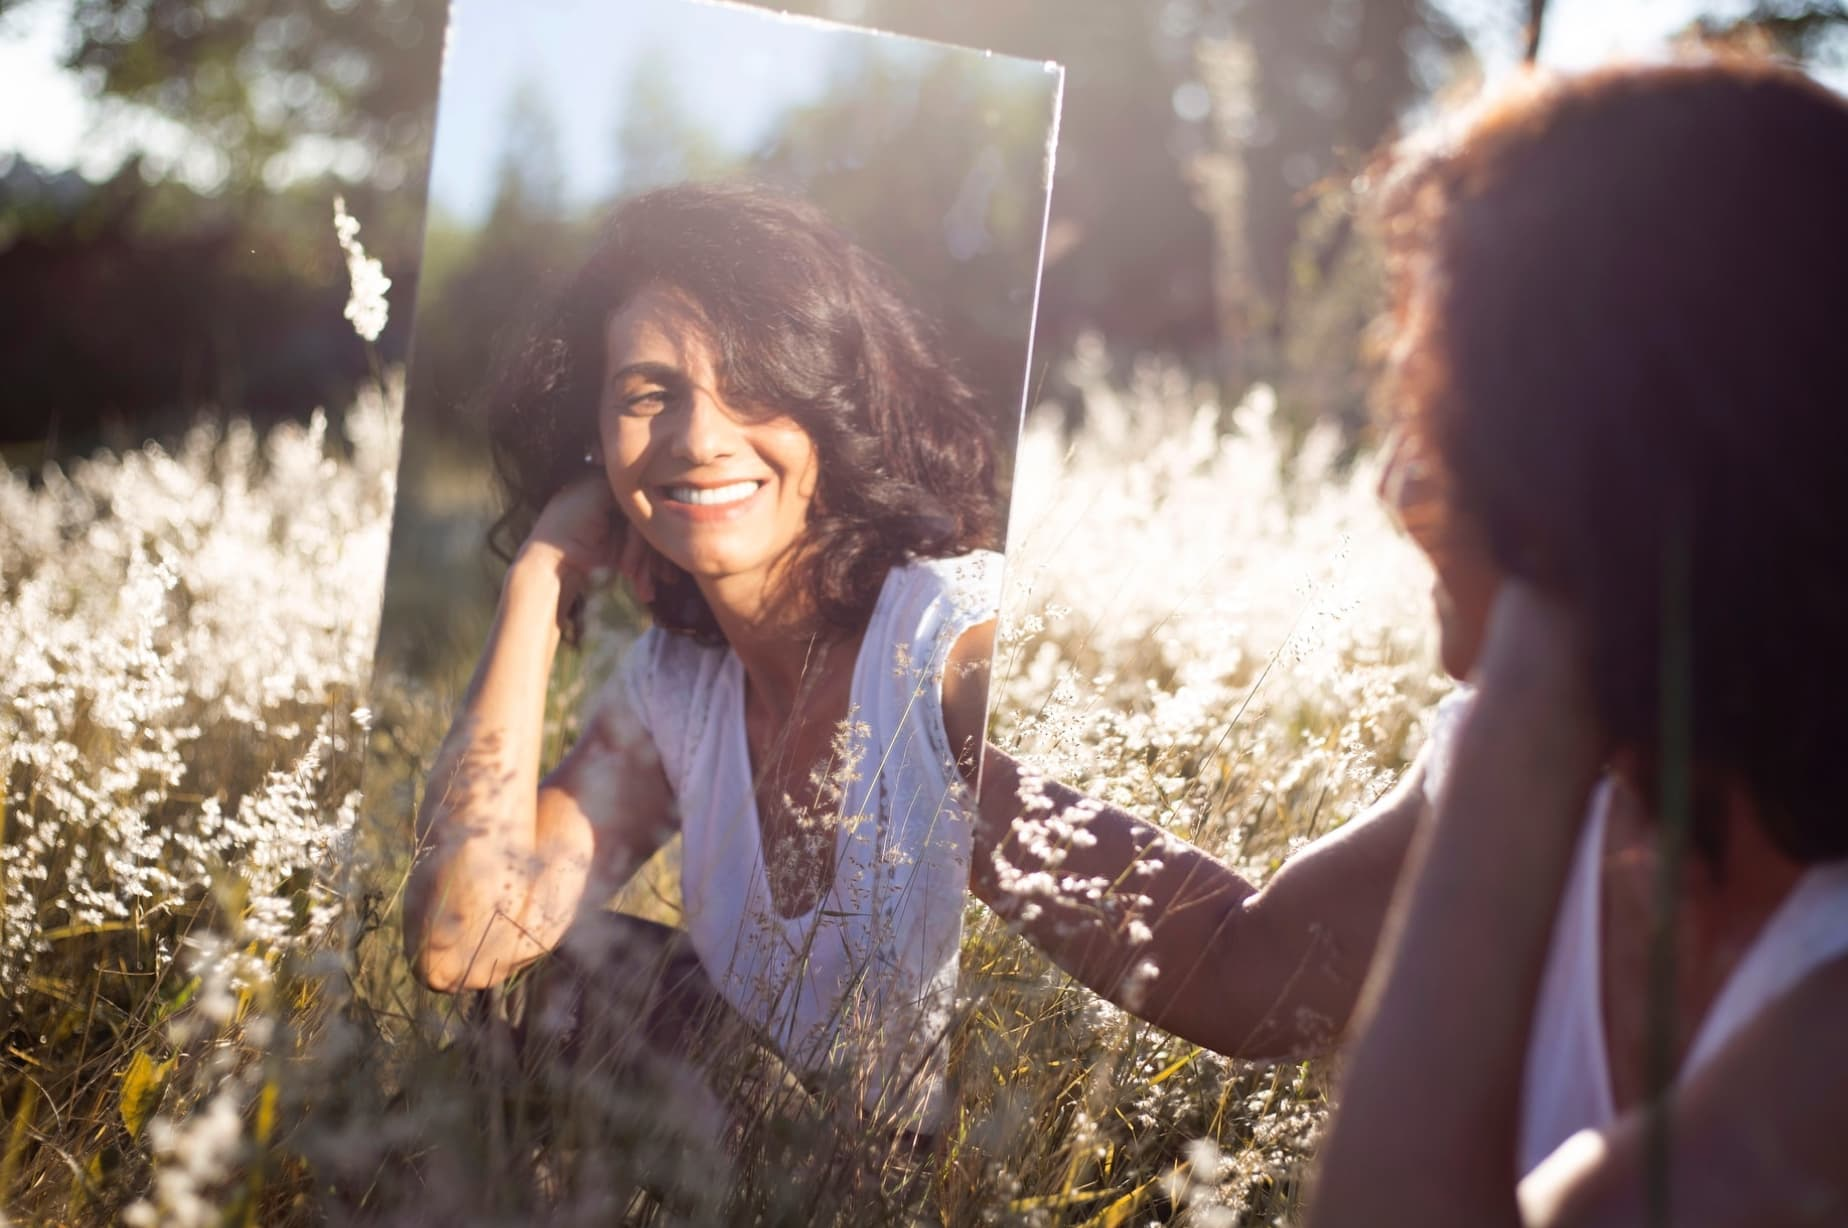 woman holding mirror outdoors in nature looking at herself